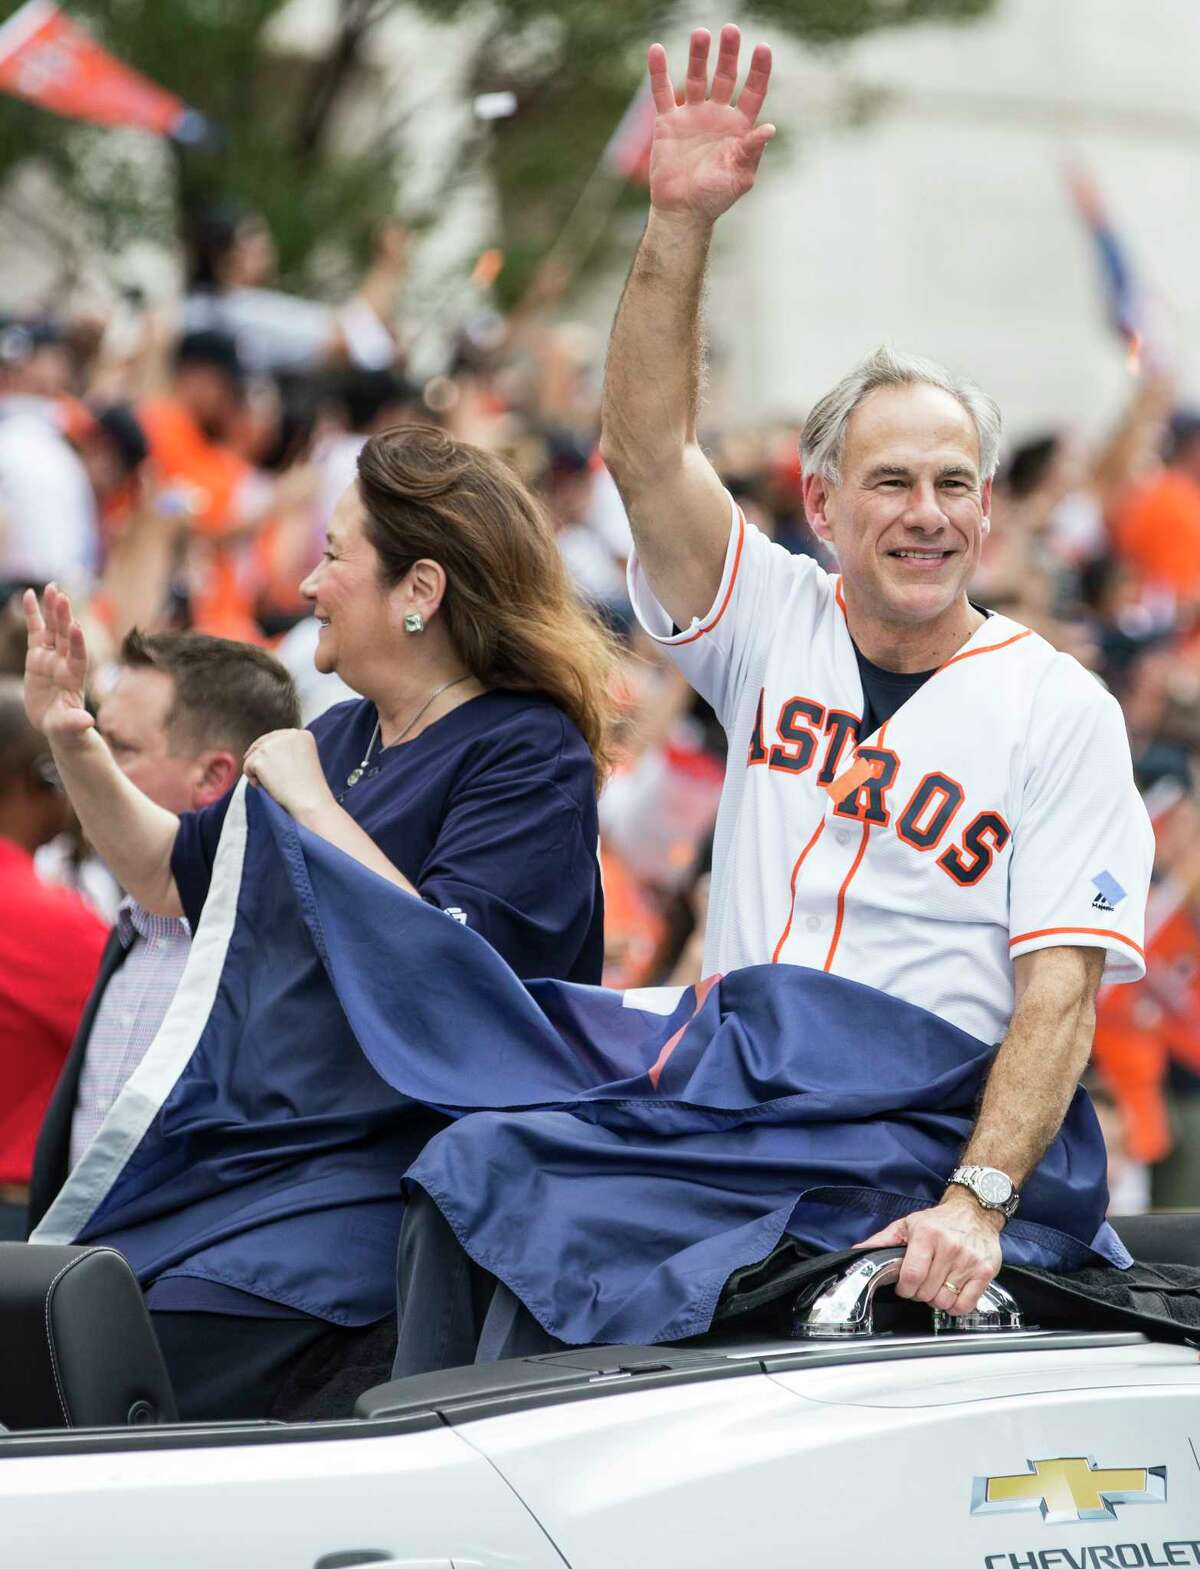 Gov. Greg Abbott waves to the crowd during the Astros World Series championship celebration parade on Friday, Nov. 3, 2017, in Houston.